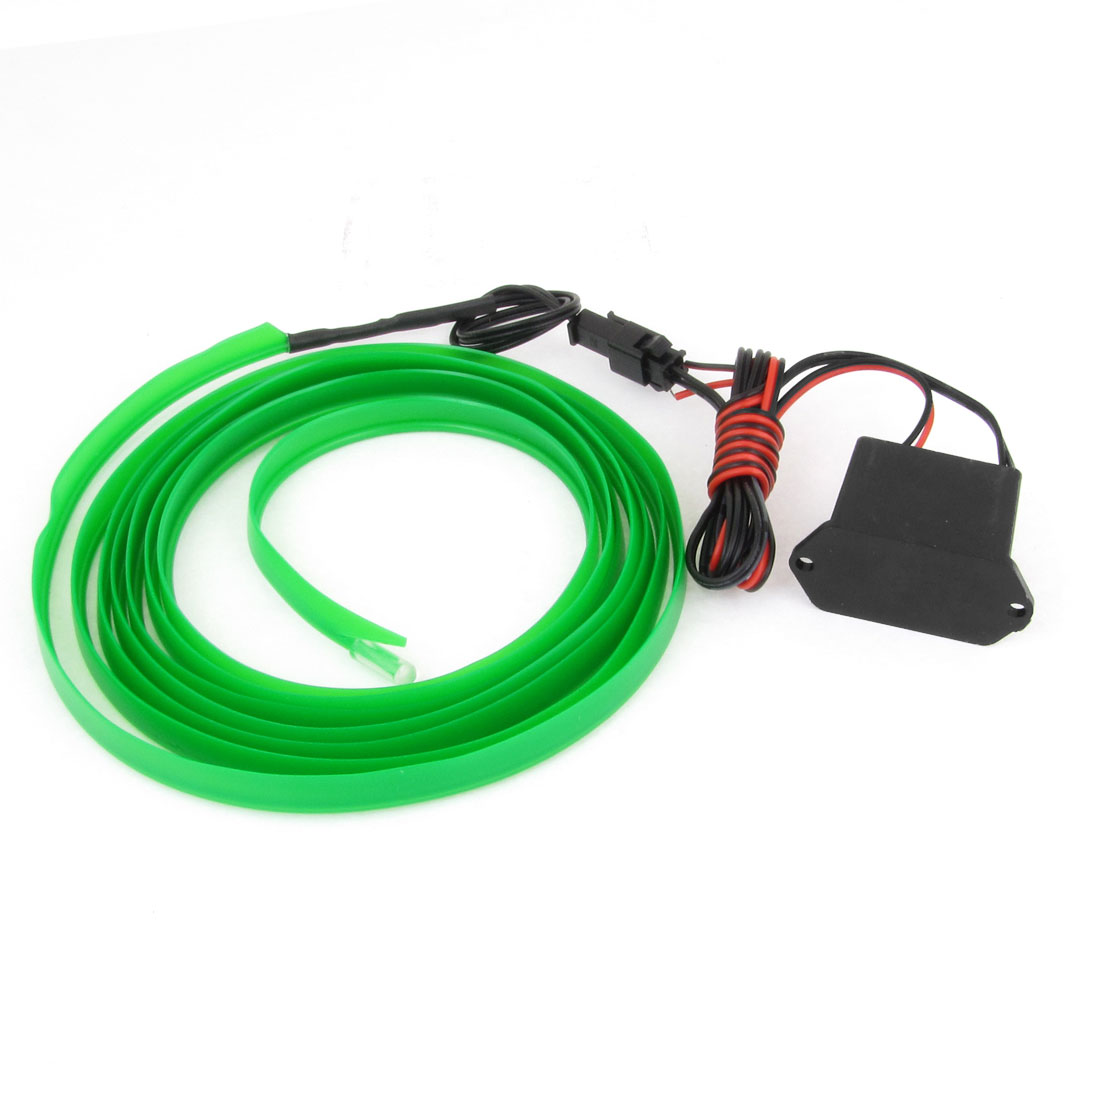 Green 2M Sewable EL Wire Neon Glow Light Rope Sew Tag Strip w Controller